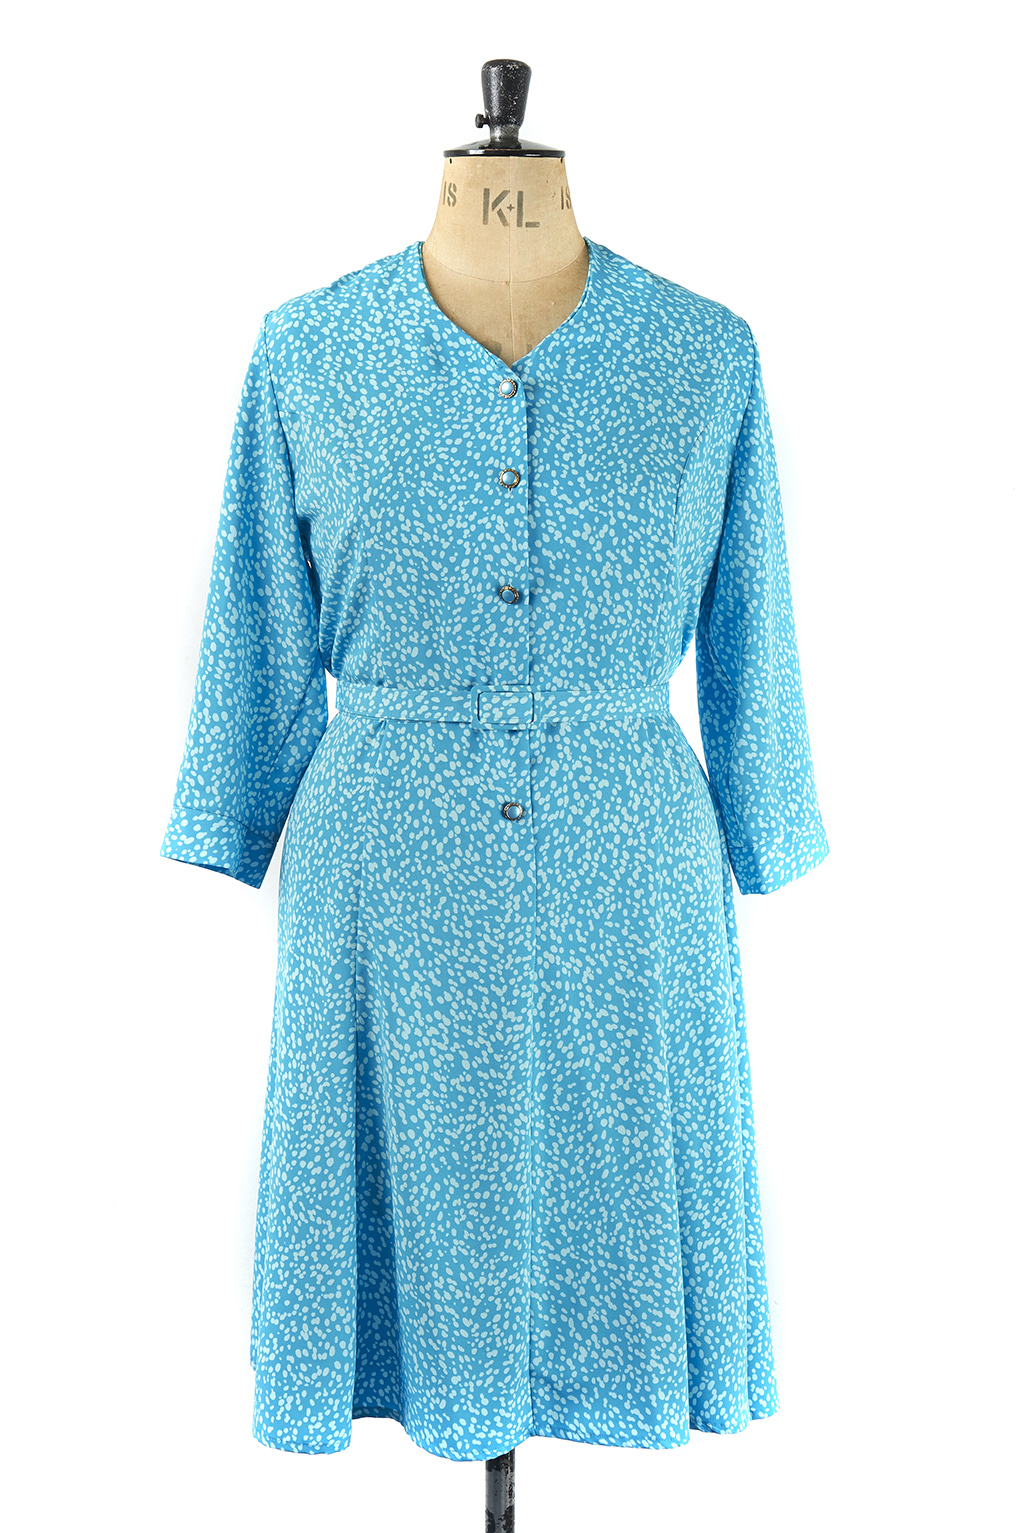 Blue Speckled Vintage Dress - Size 20